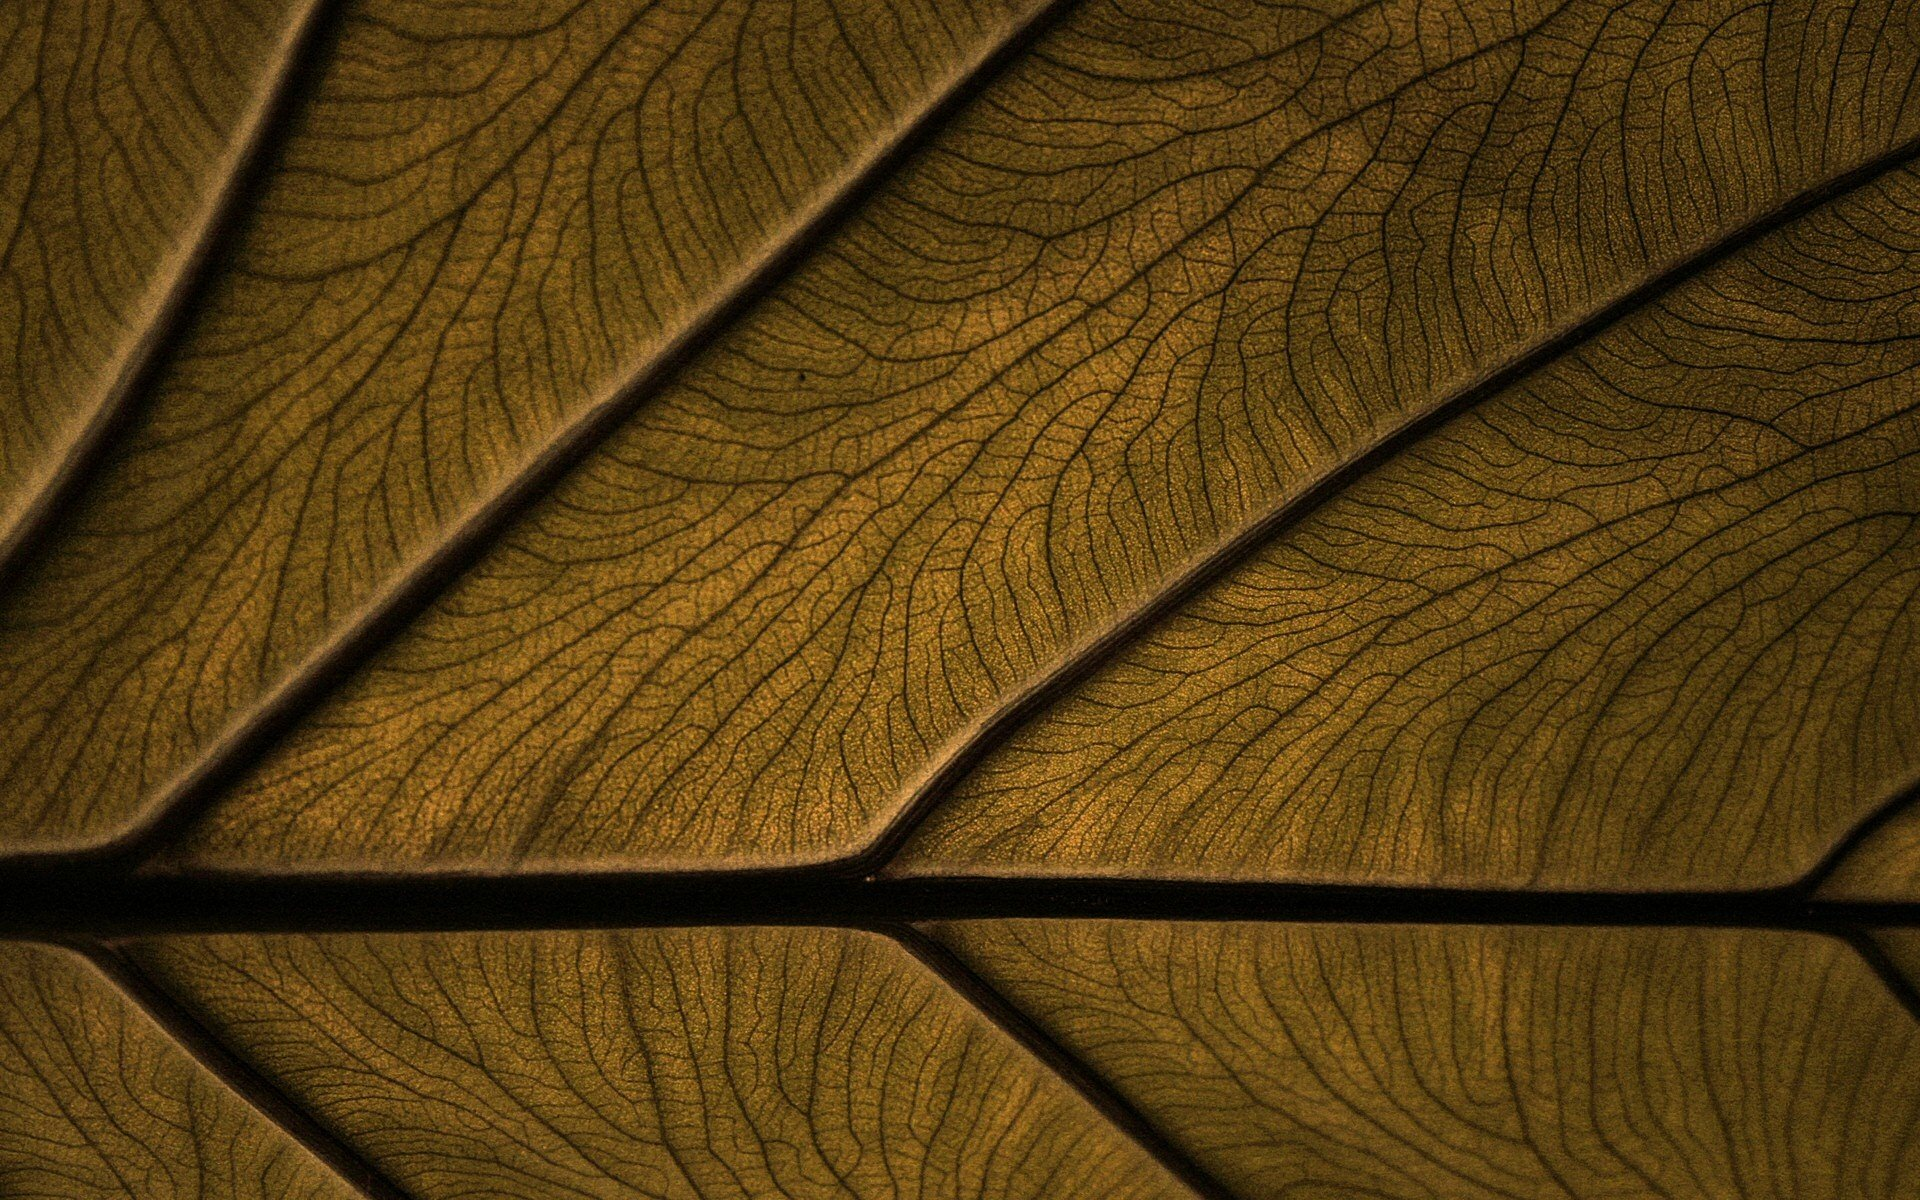 75 Brown Backgrounds Wallpapers Images Pictures  : Brown Backgrounds30 from www.designtrends.com size 1920 x 1200 jpeg 639kB